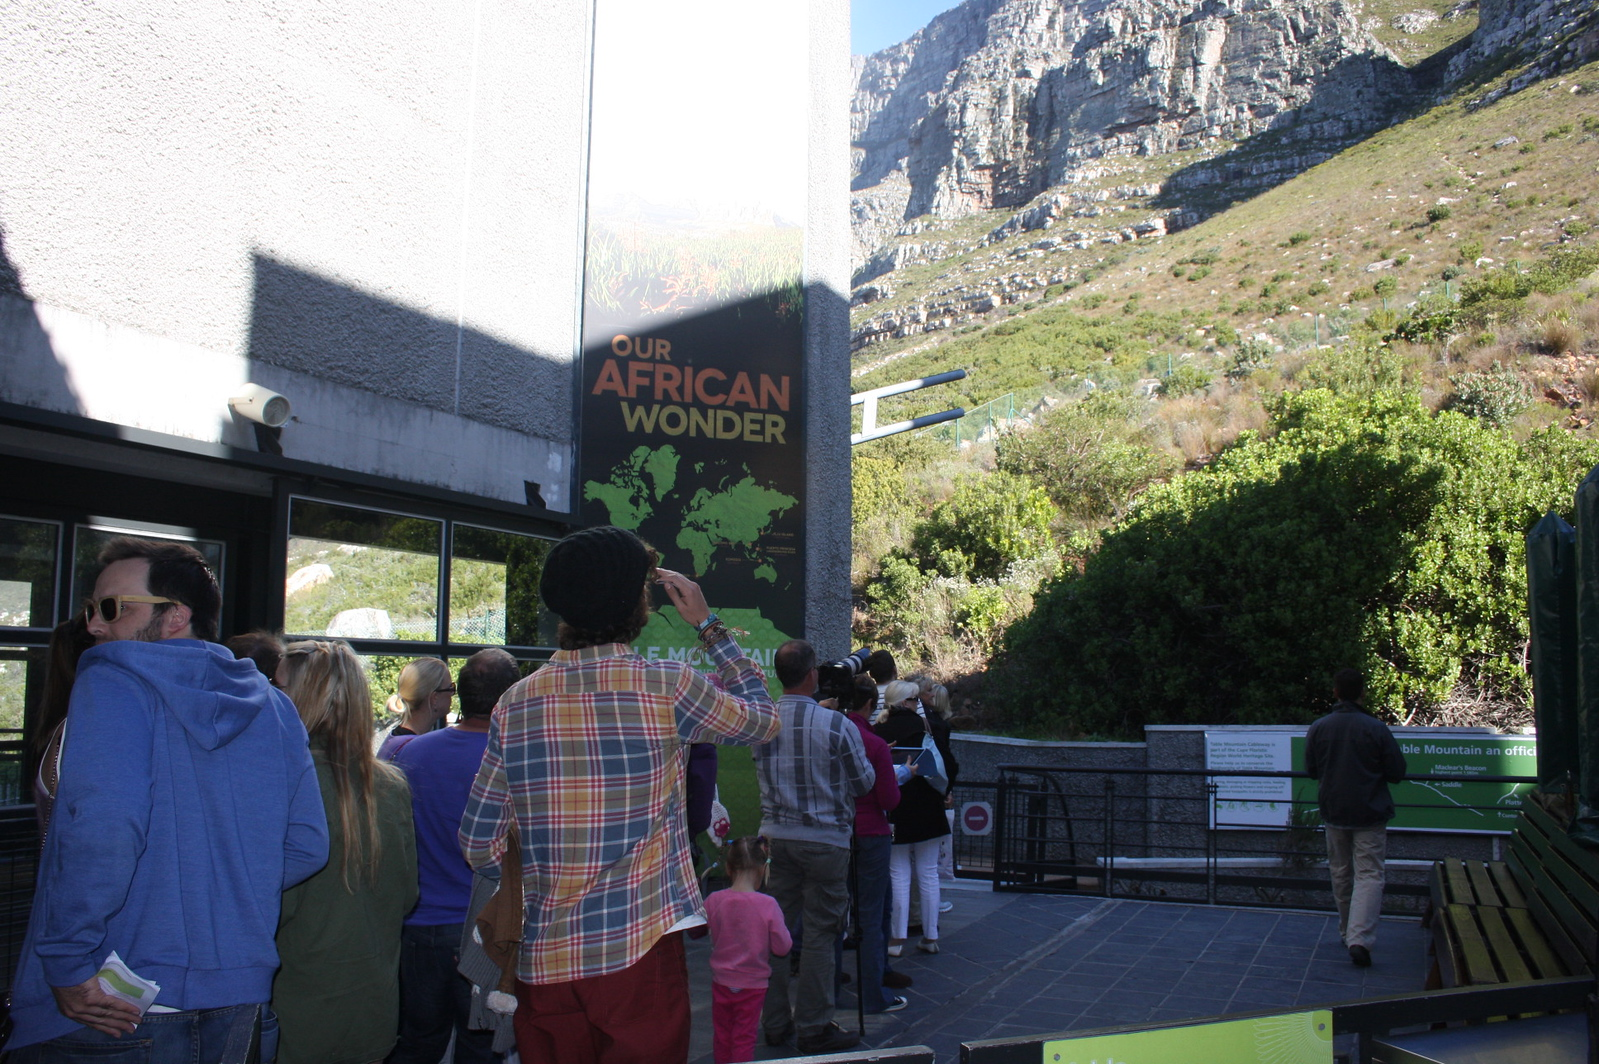 Line for cable car up the mountain